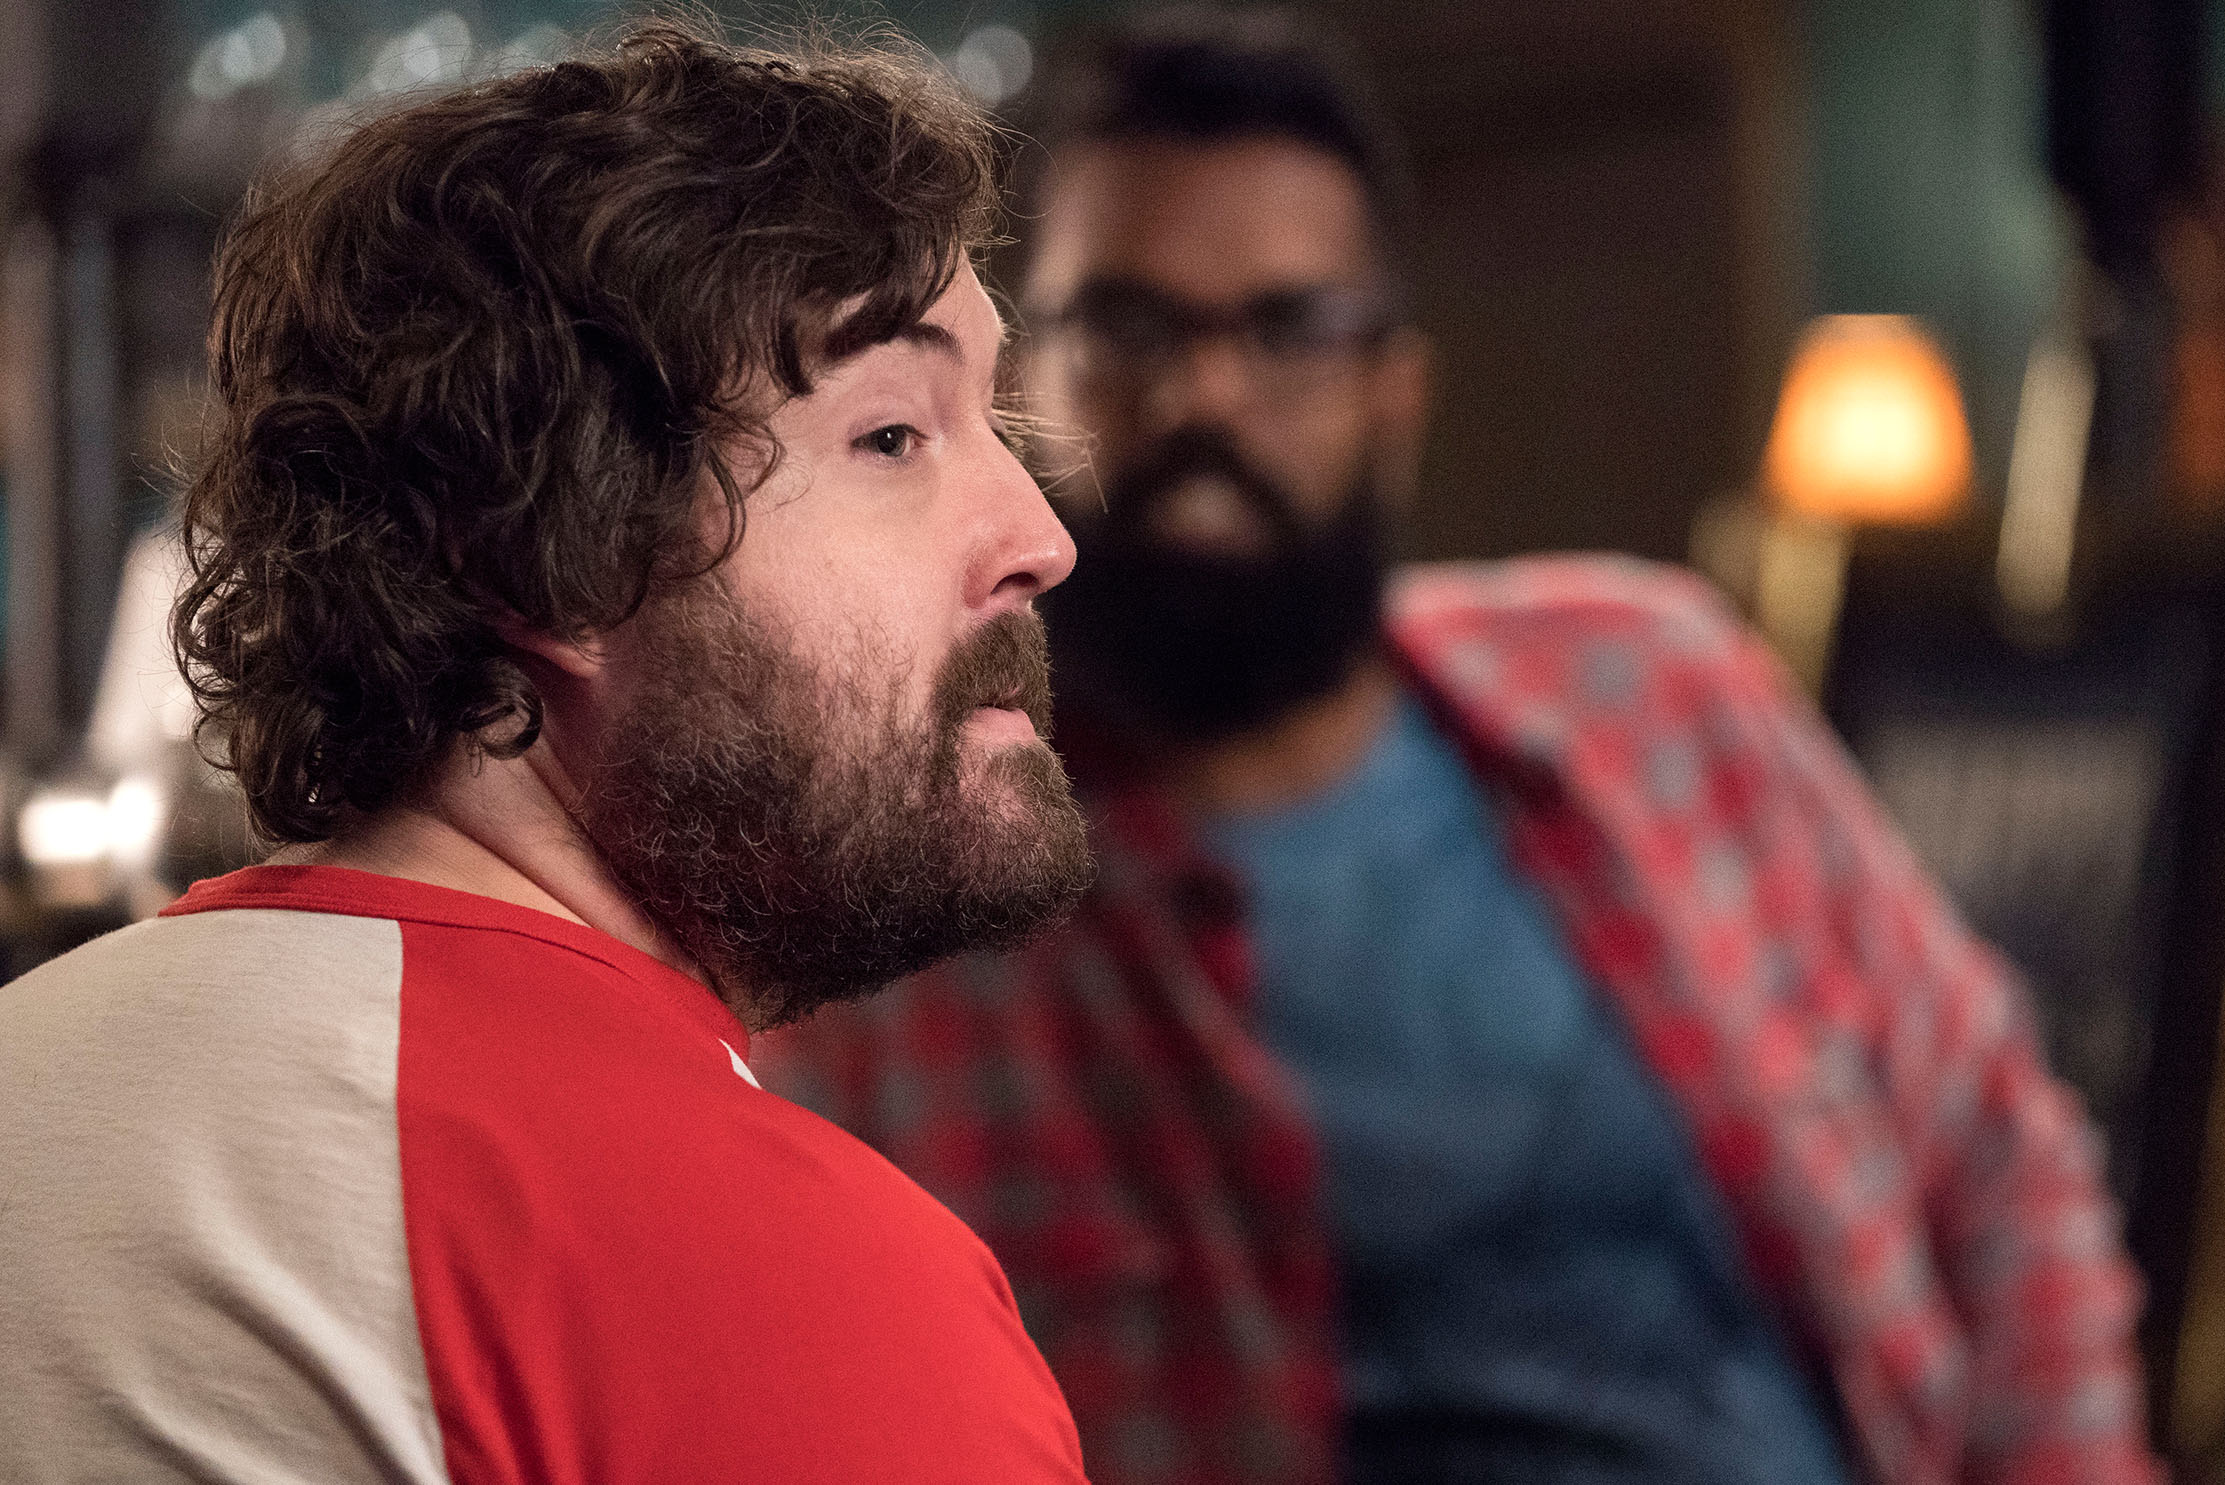 BN1 chats with Nick Helm ahead of The Reluctant landlord series 2